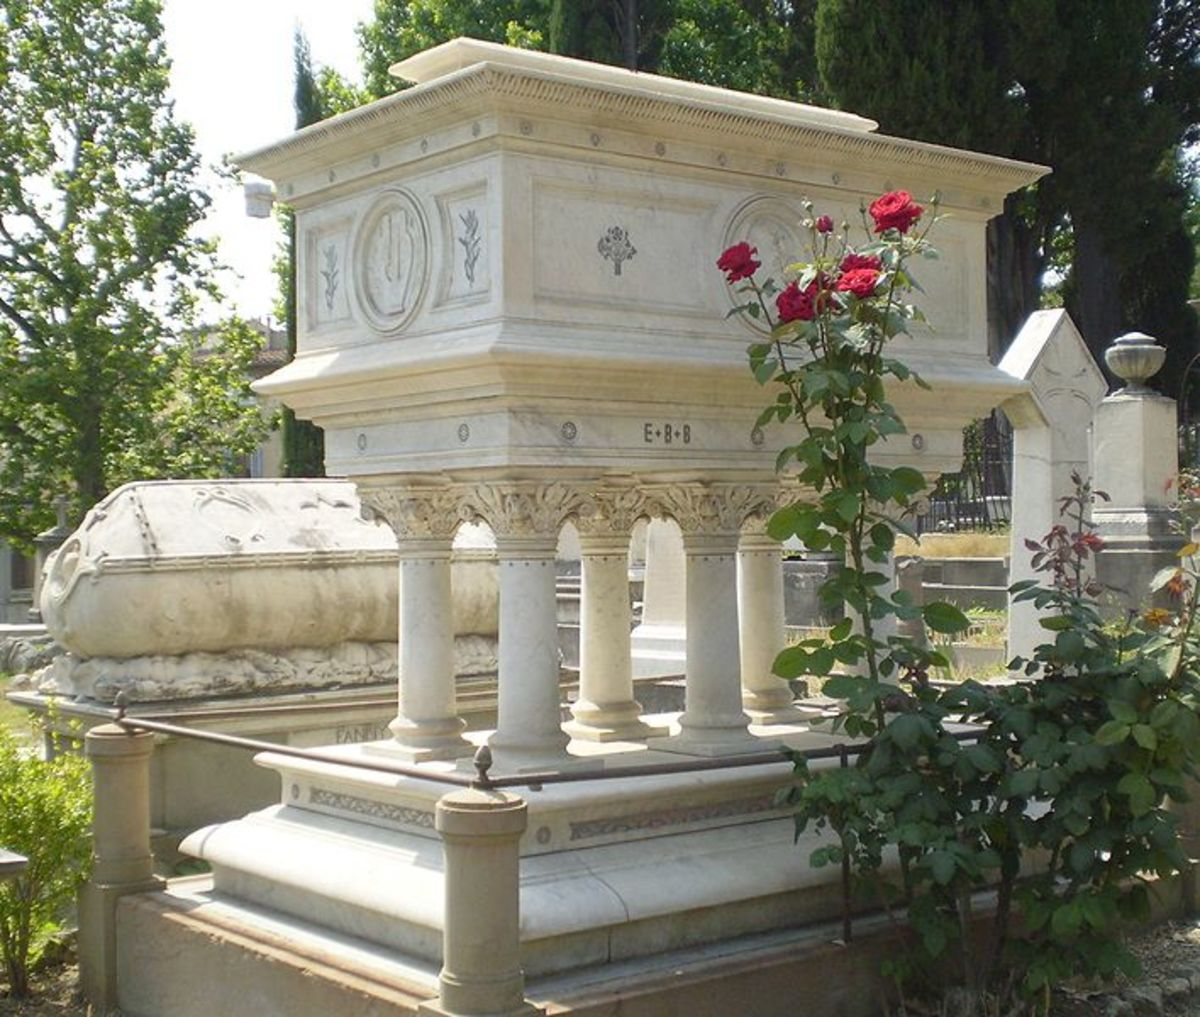 Tomb of Elizabeth Barret Browning in the English Cemetery, Florence, Italy.